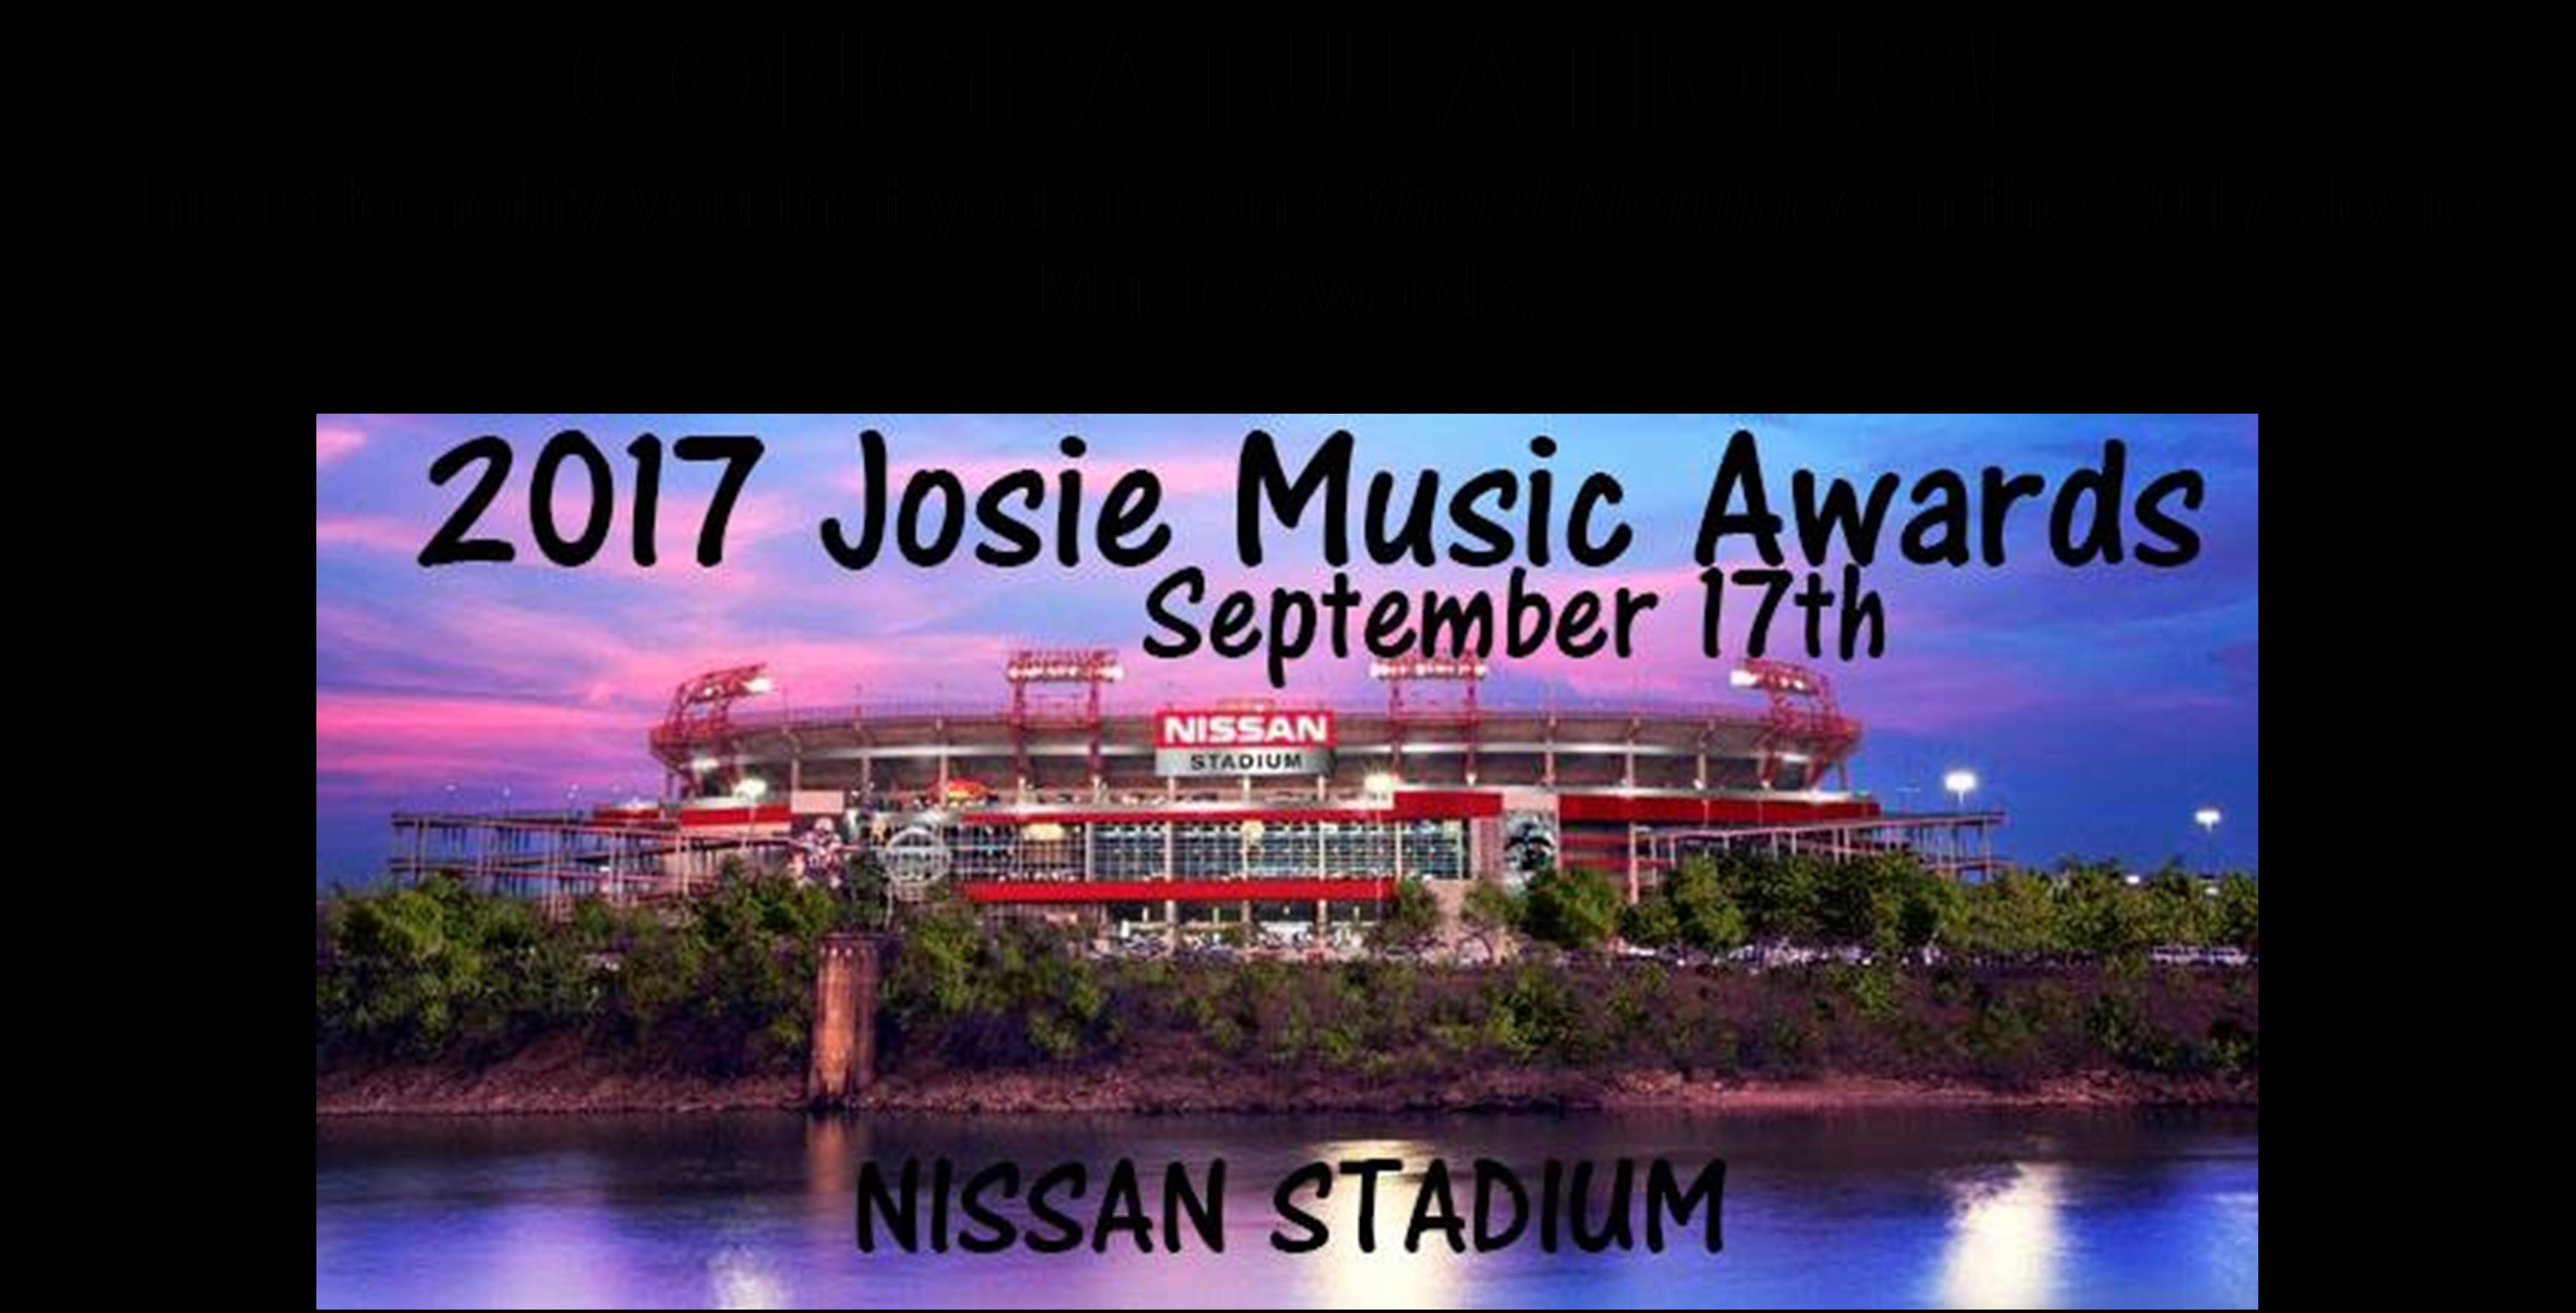 josieawards jpeg